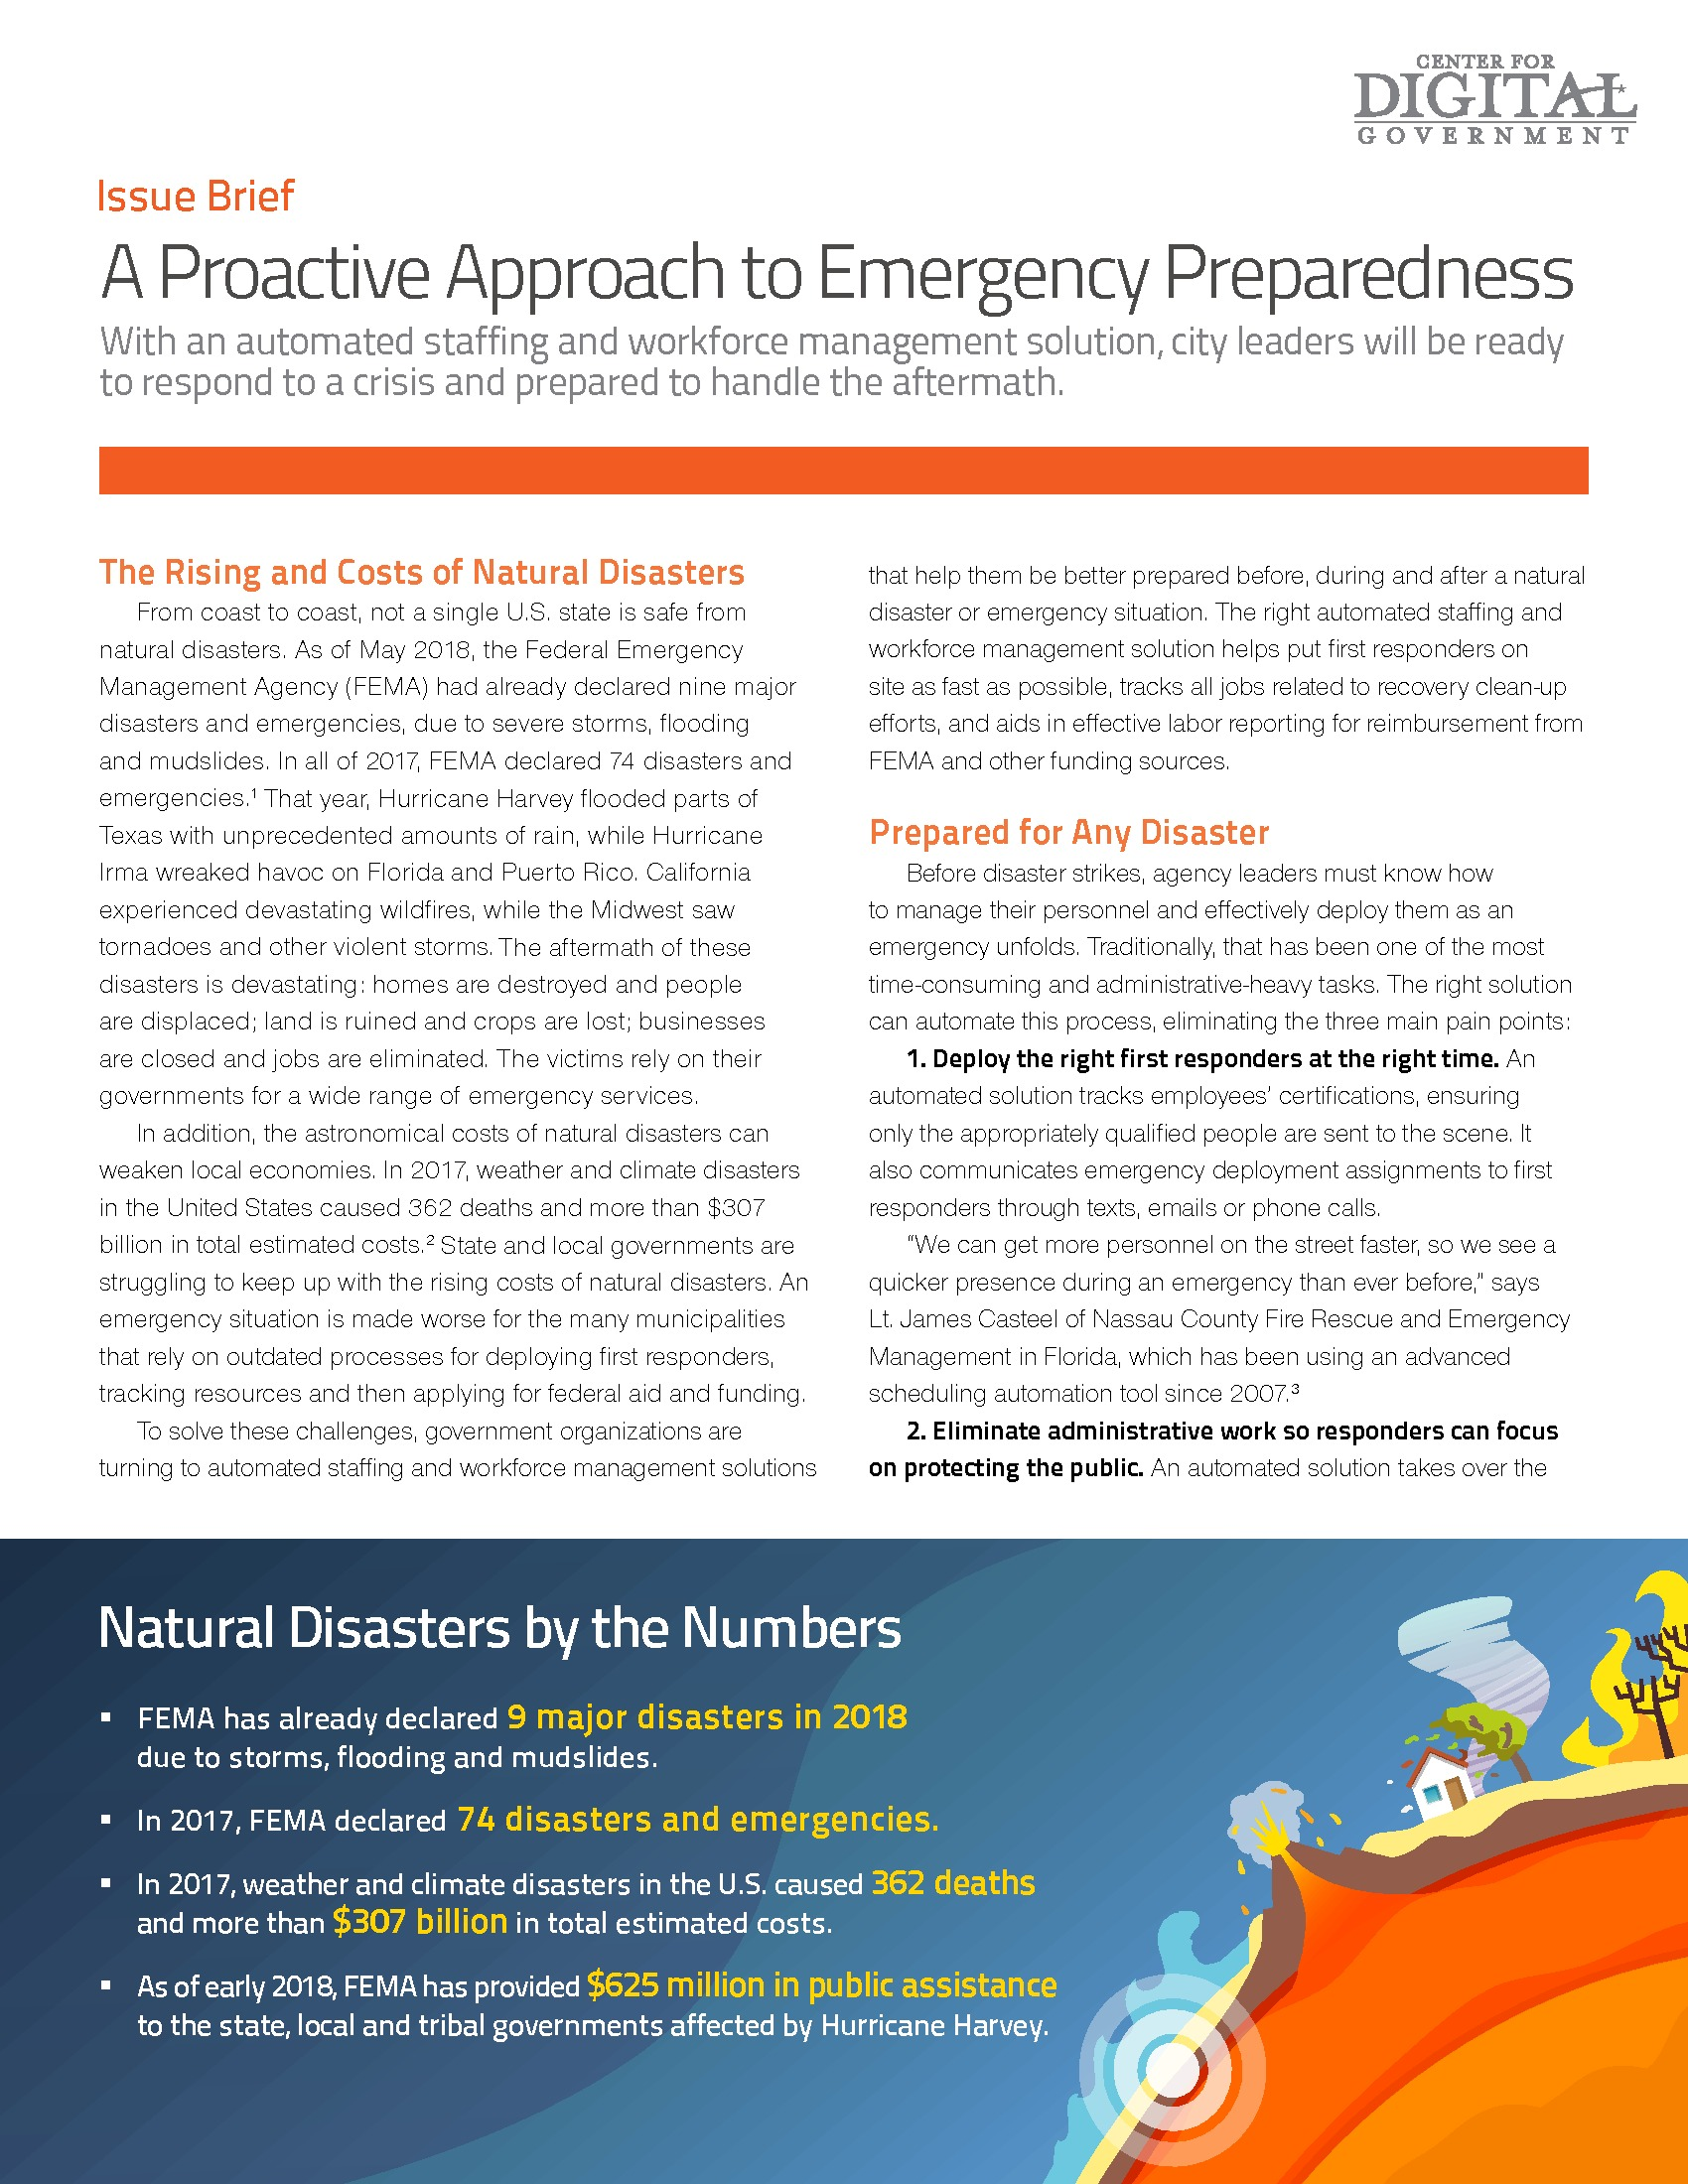 A Proactive Approach to Emergency Preparedness